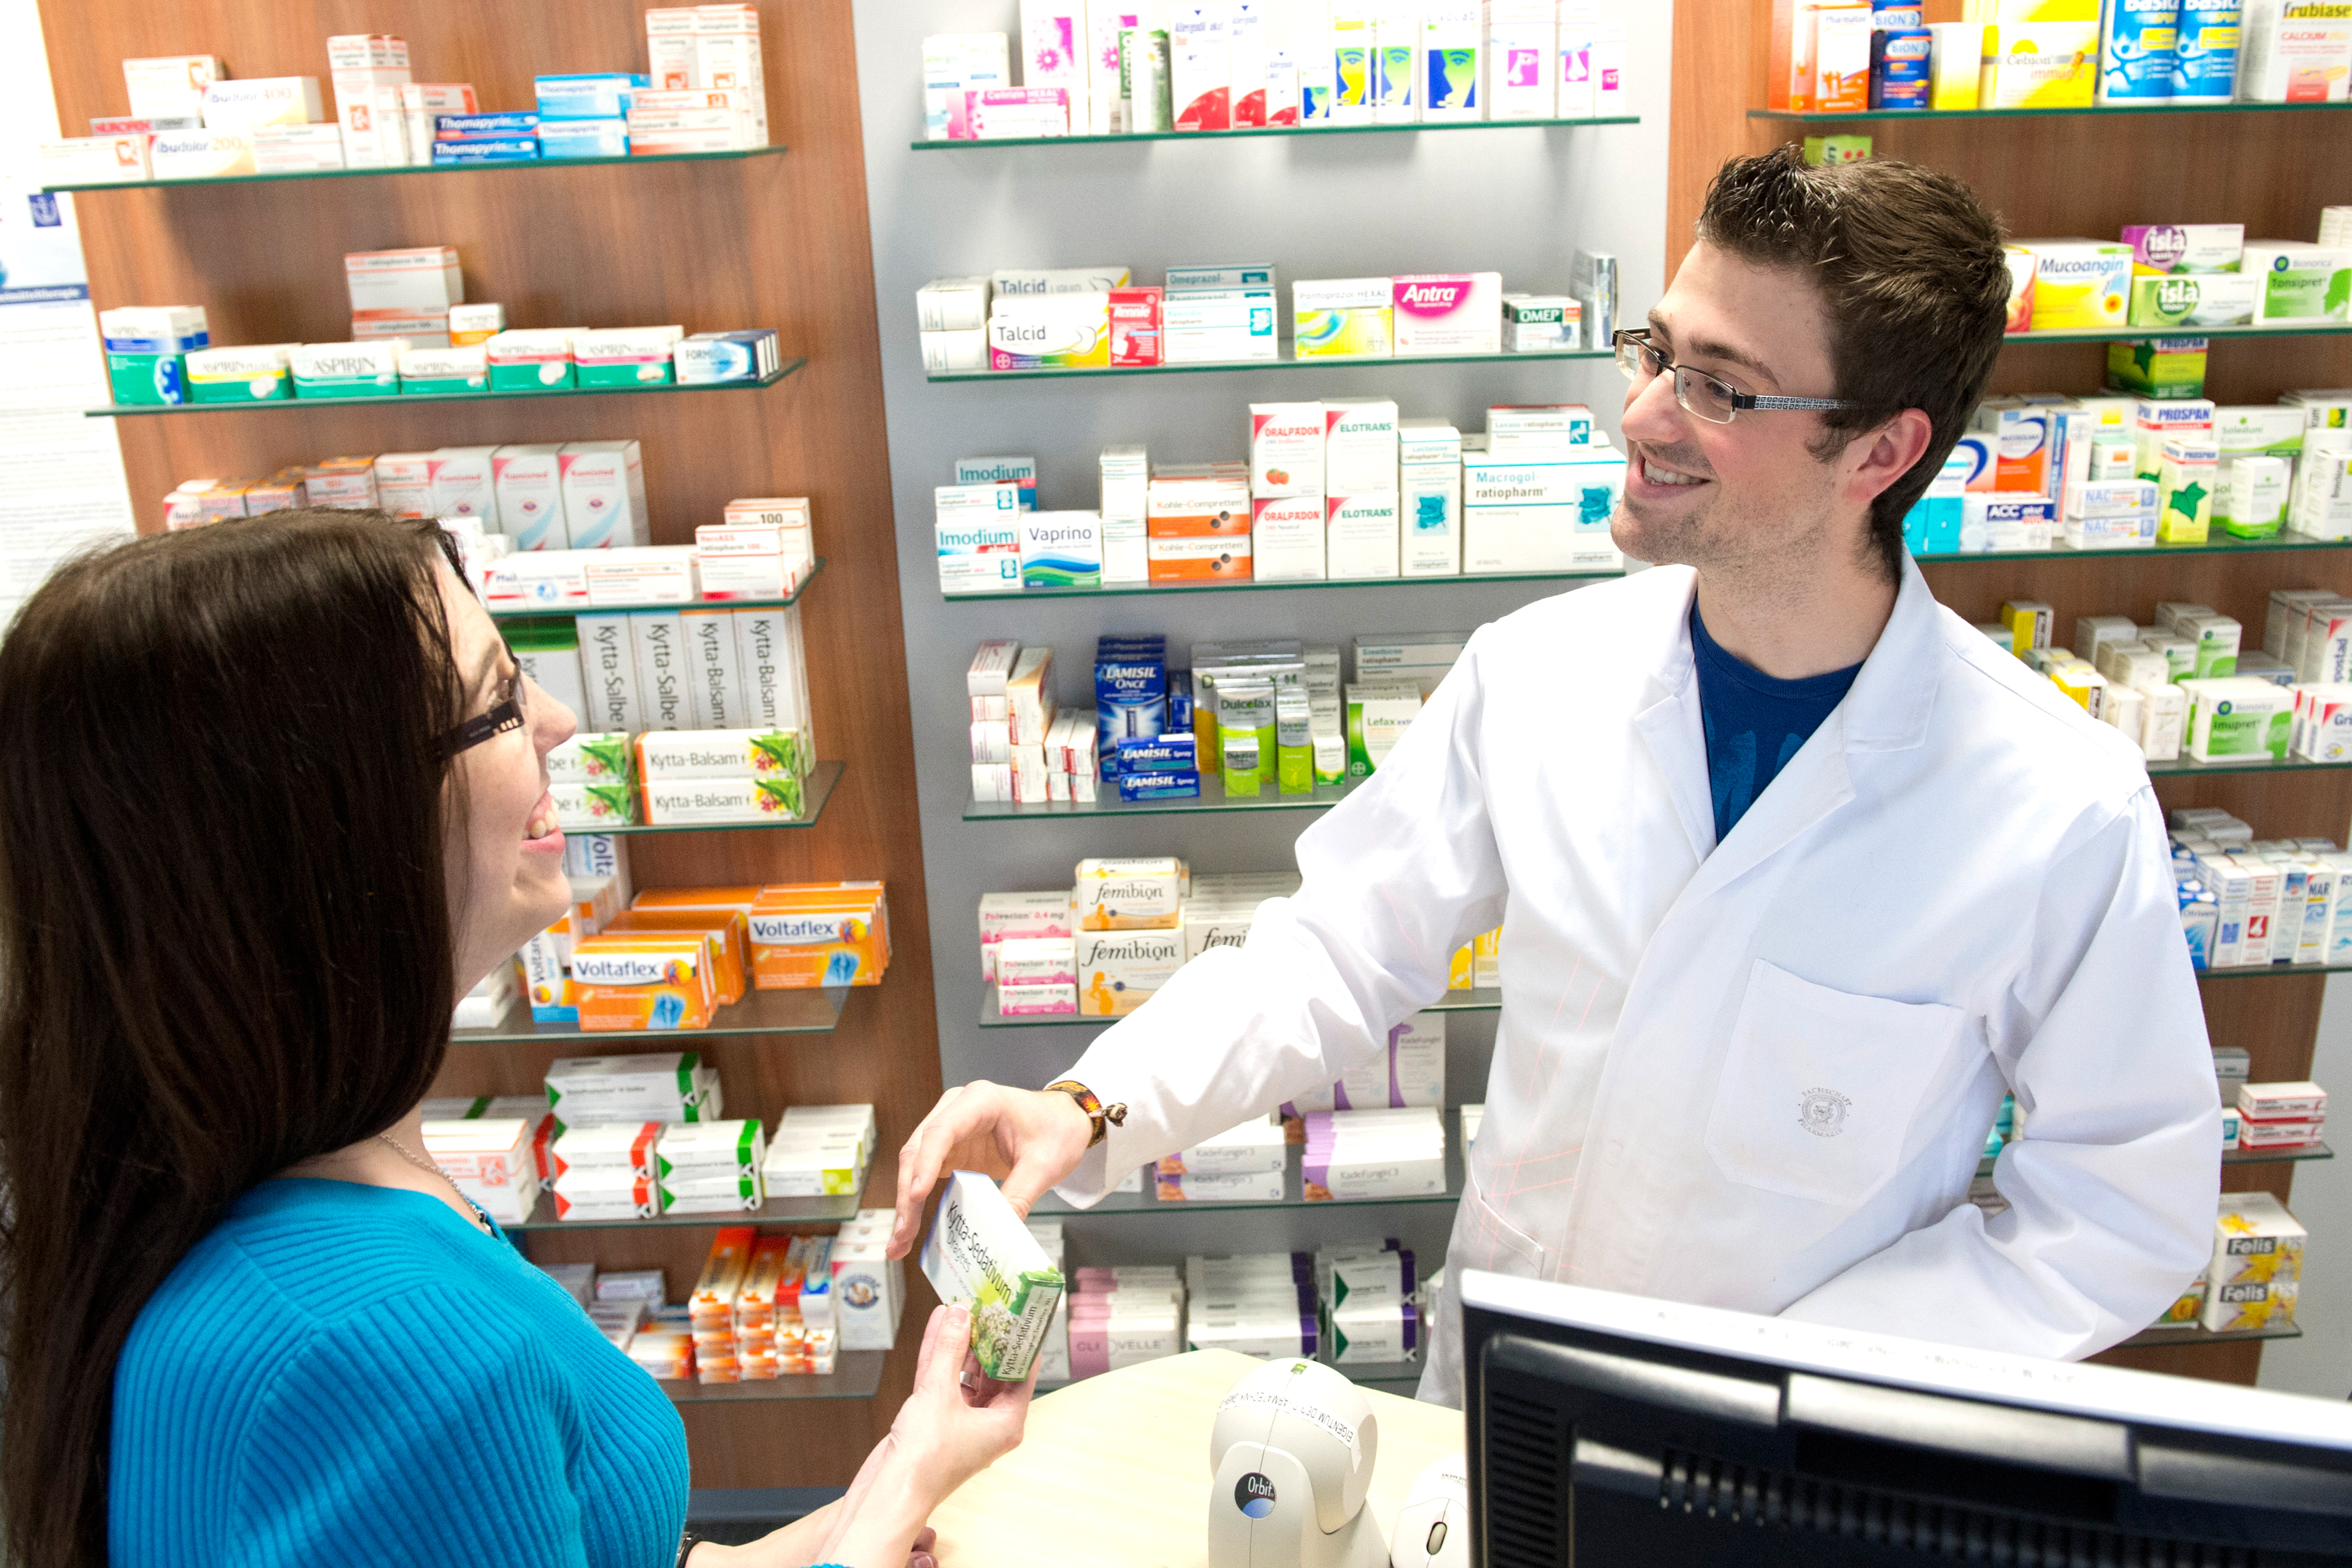 walk in interview at aster pharmacy for pharmacist trainee pharmacist bpharm mpharm - Pharmacist Trainee